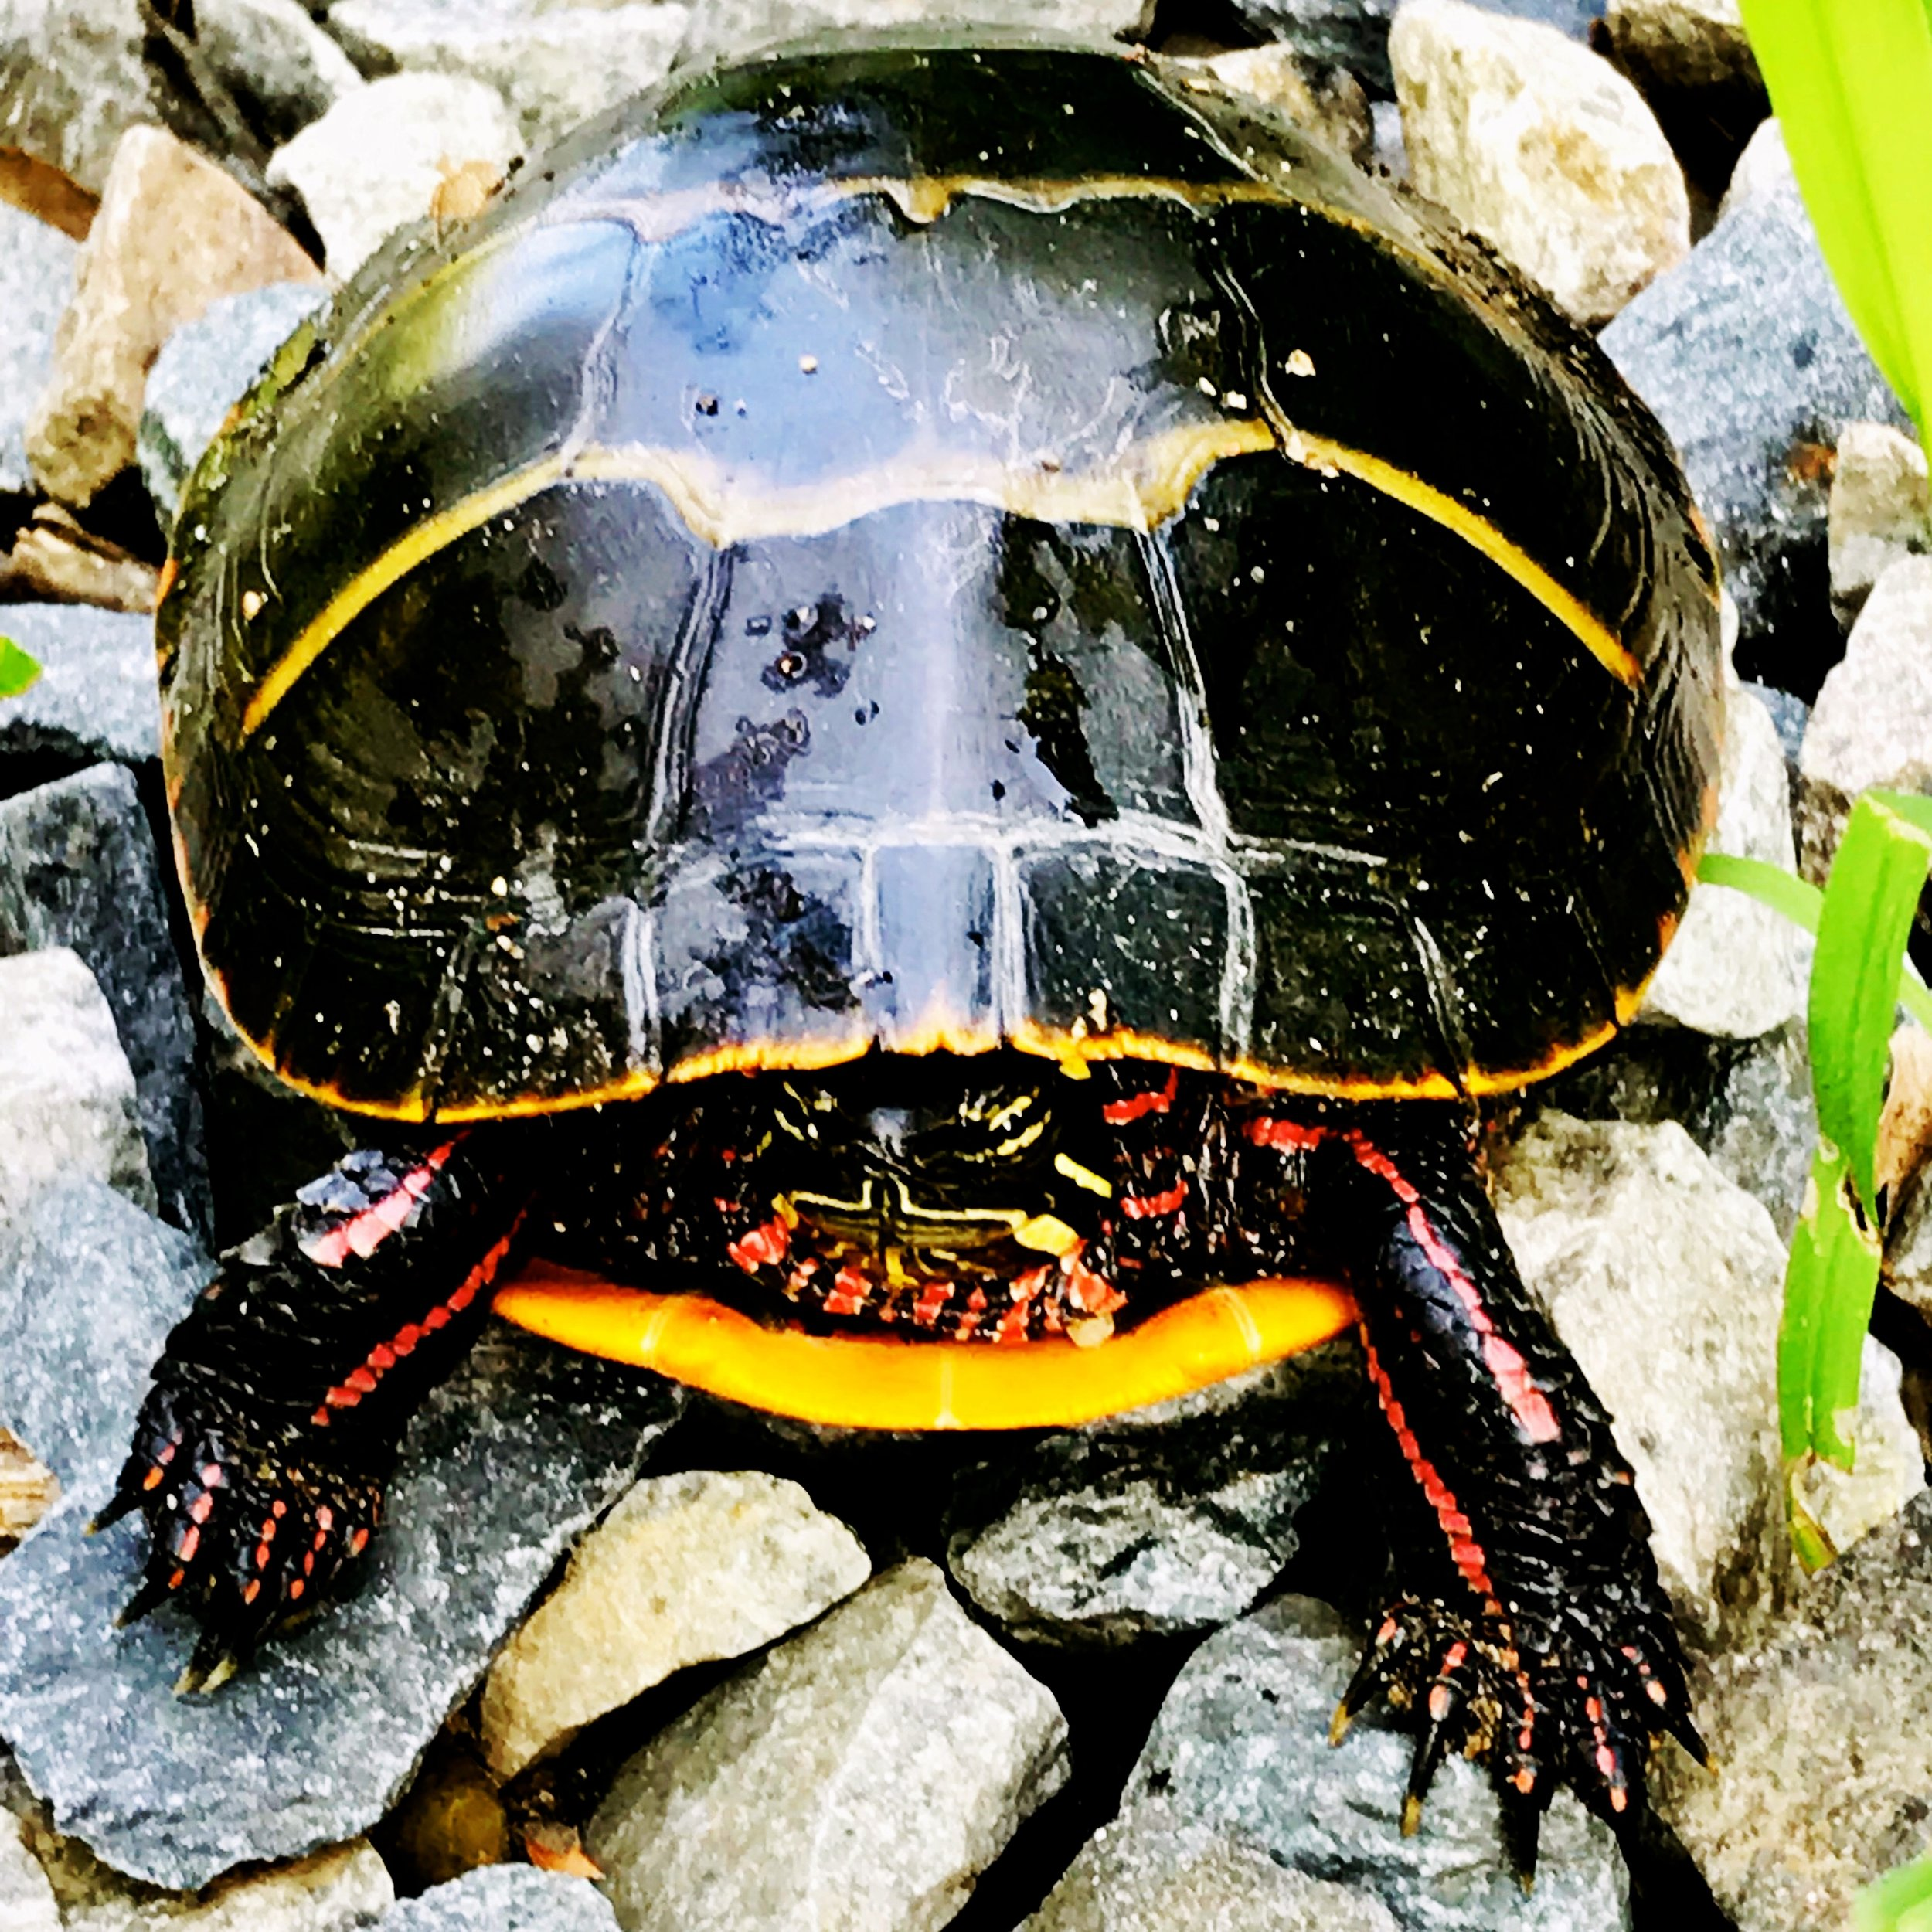 Painted turtle by the railroad tracks, Charles River